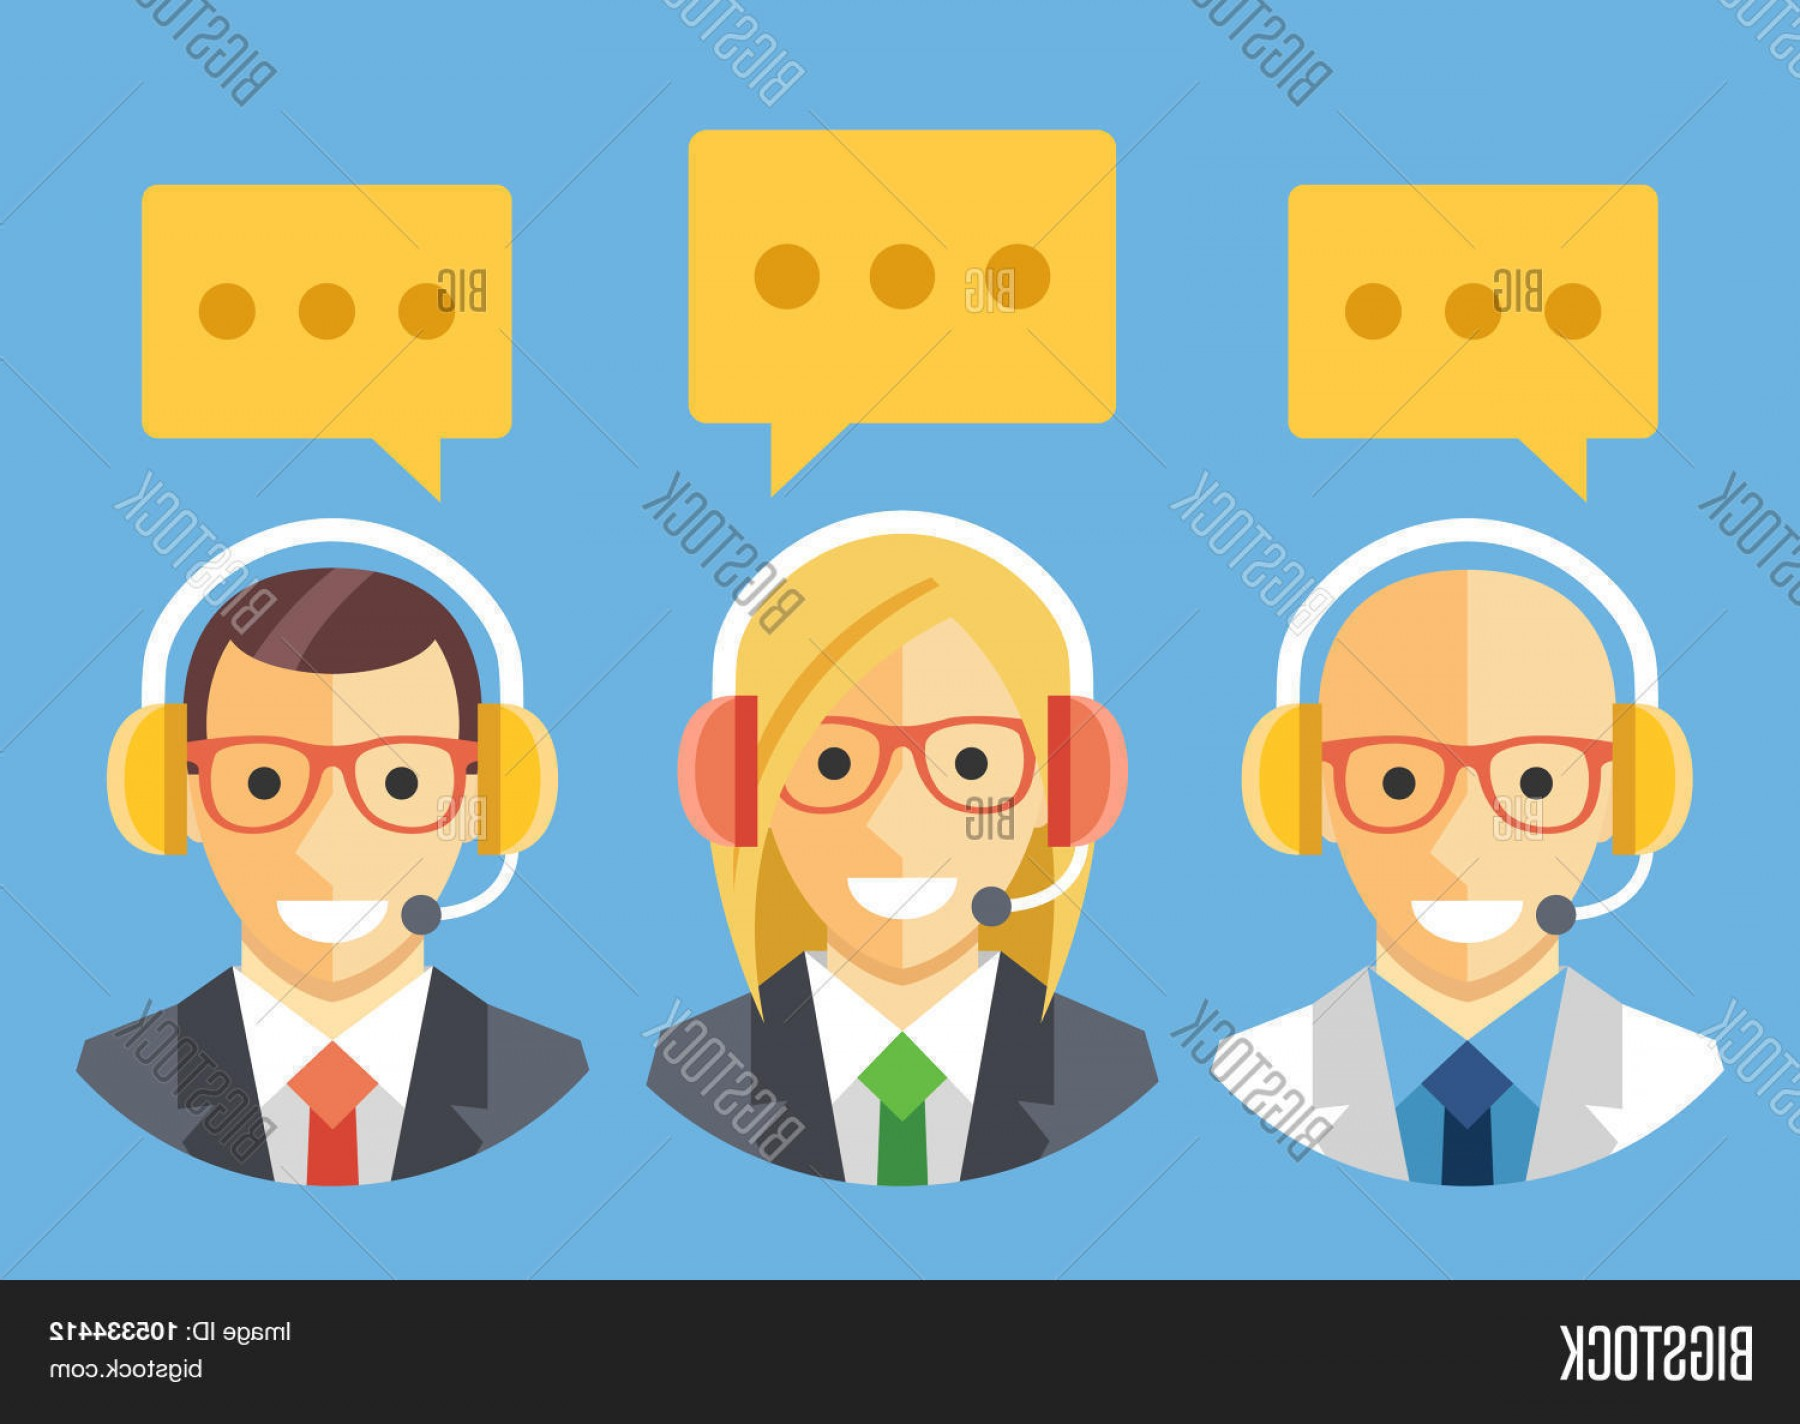 Support Staff Vector: Stock Vector People With Headset Technical Supportc Customer Supportc Call Center Staff Vector Flat Illustration